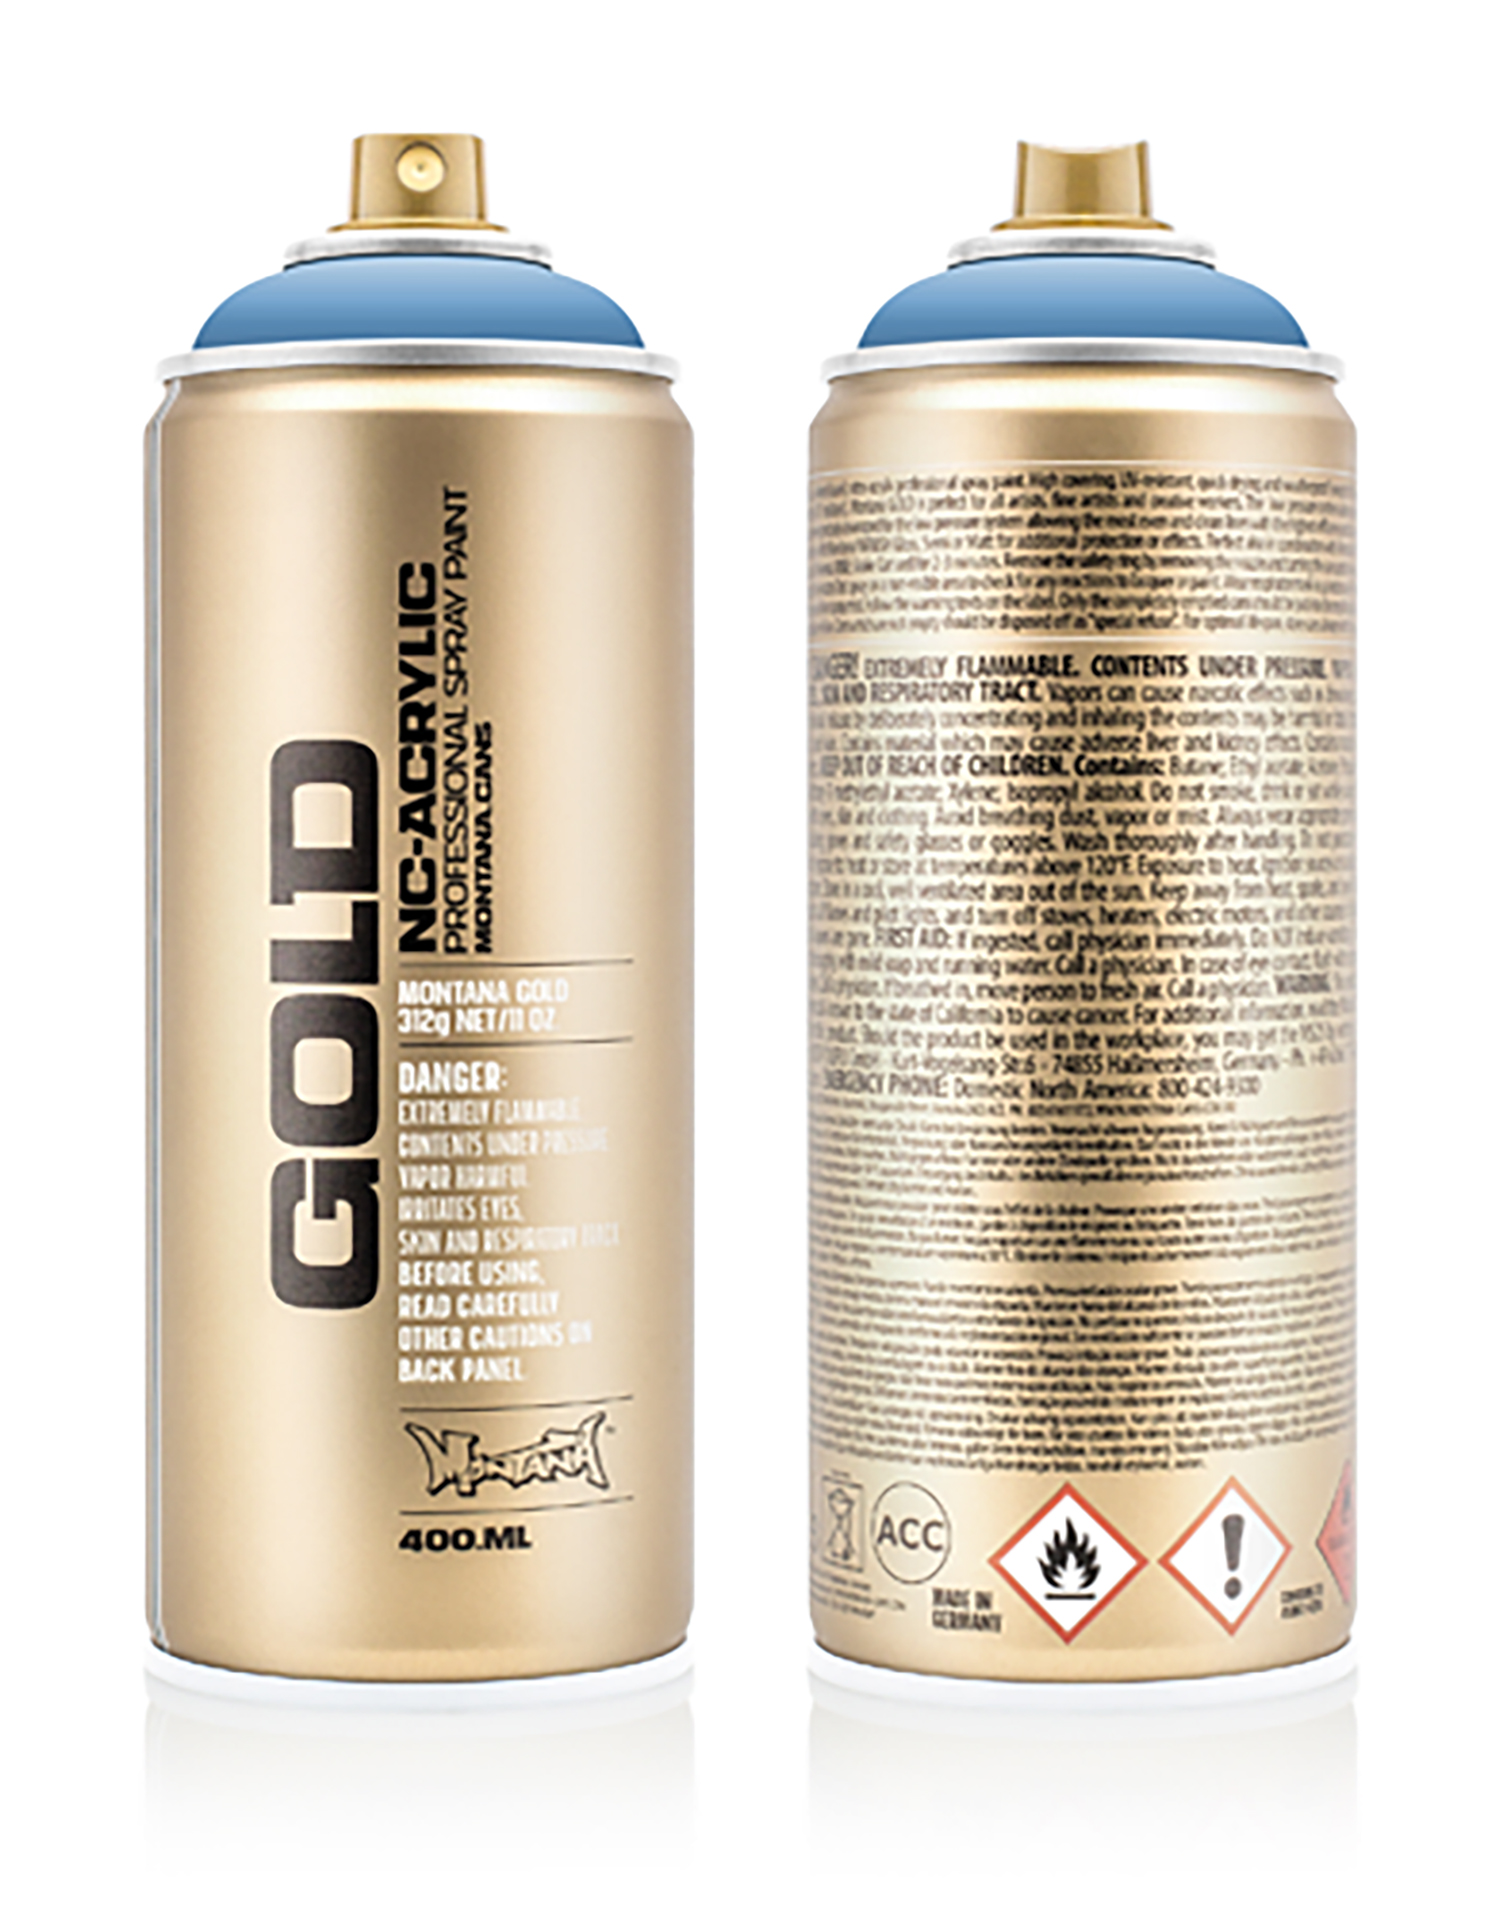 MONTANA-GOLD-SPRAY-400ML-CL-5220